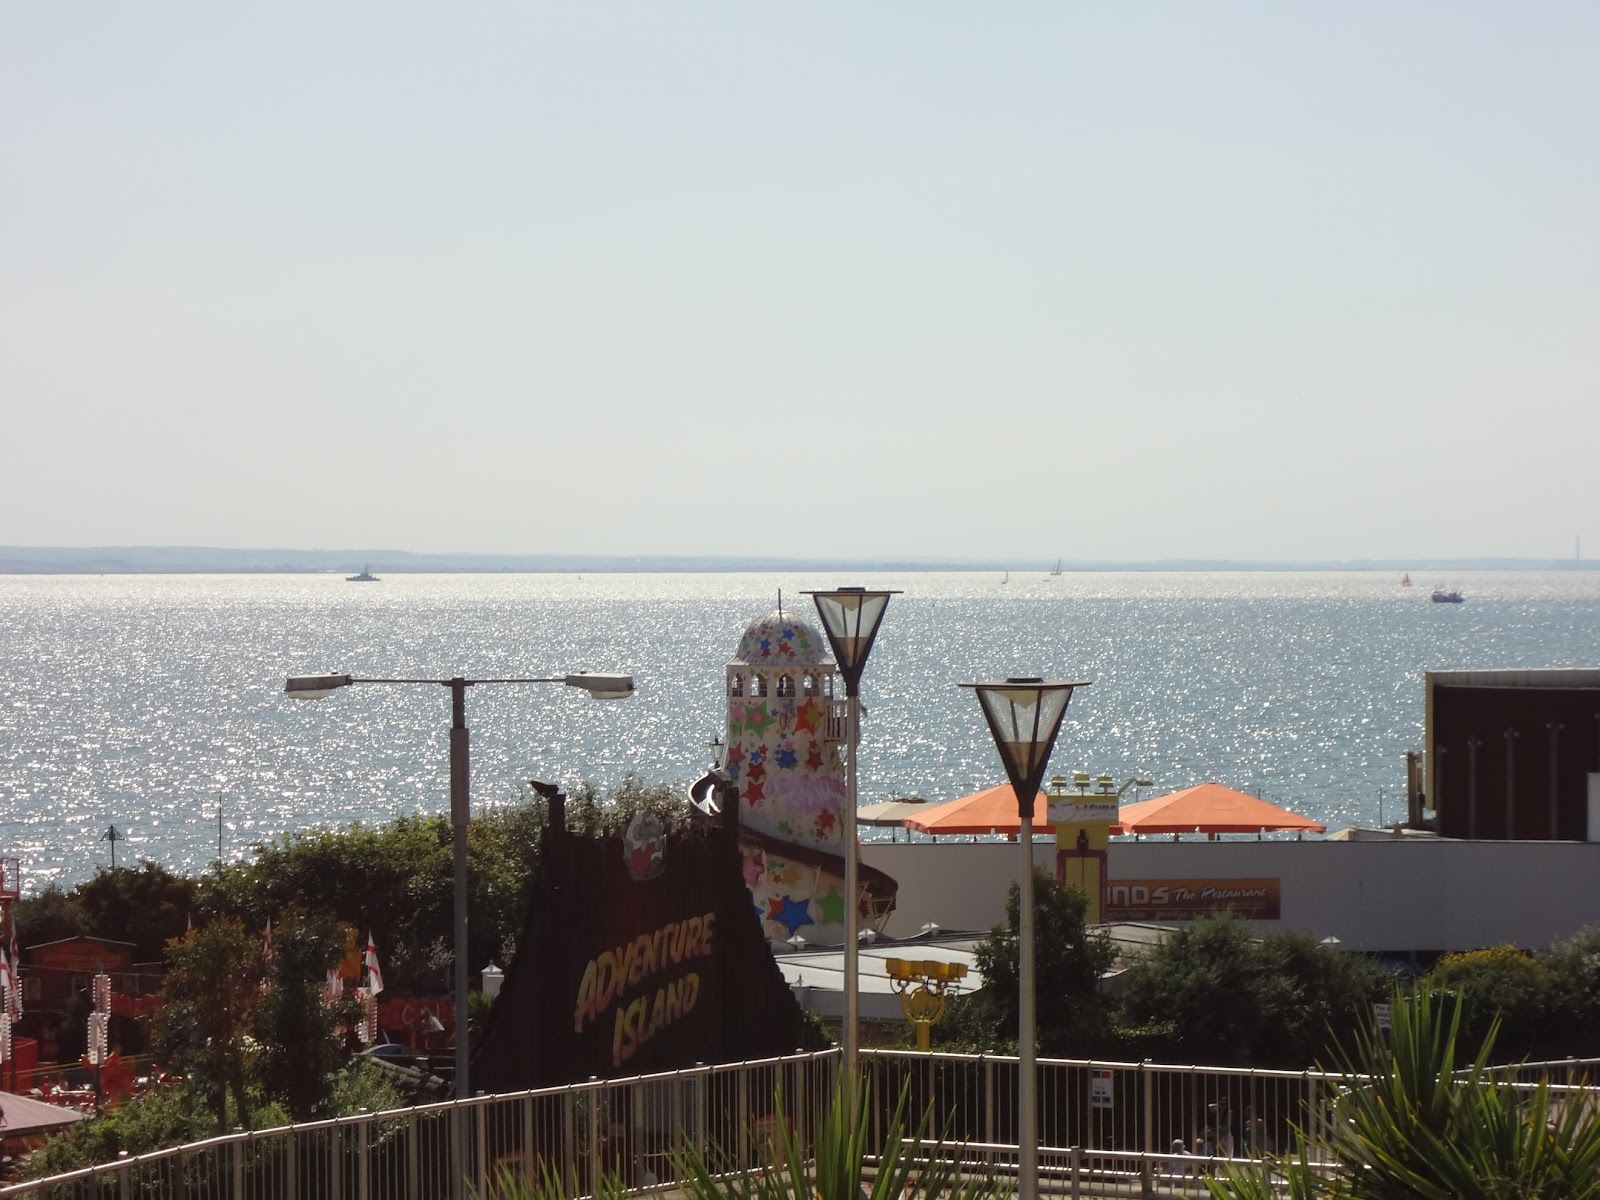 southend on sea christian personals Southend-on-sea (/ s aʊ θ ˌ ɛ n d-/ ( listen)), commonly referred to as simply southend, is a town and wider unitary authority area with borough status in southeastern essex, england it.